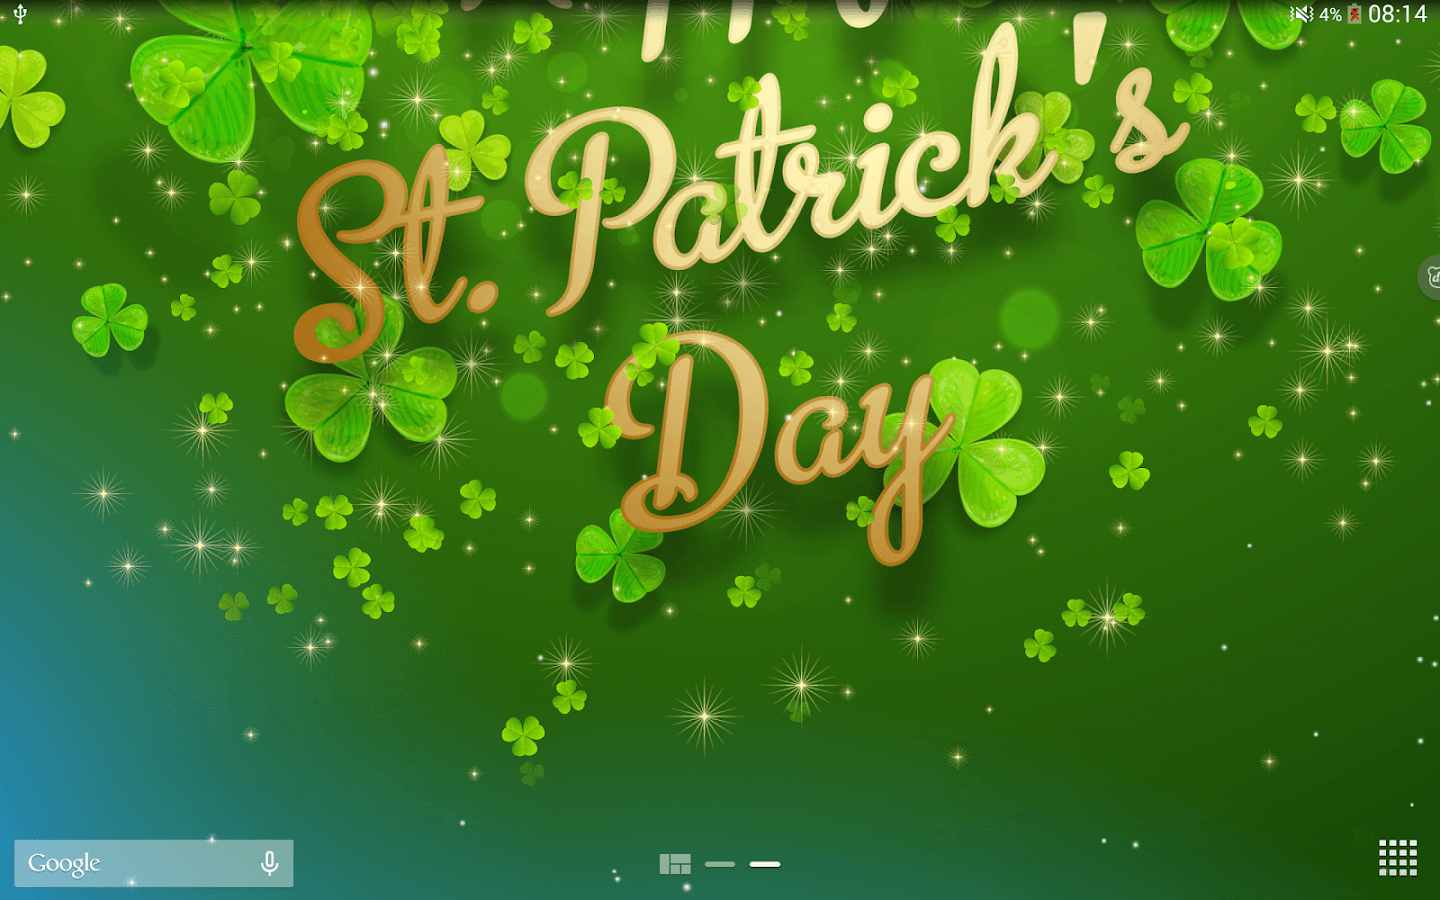 Snoopy St Patricks Day Wallpaper Posted By Samantha Anderson